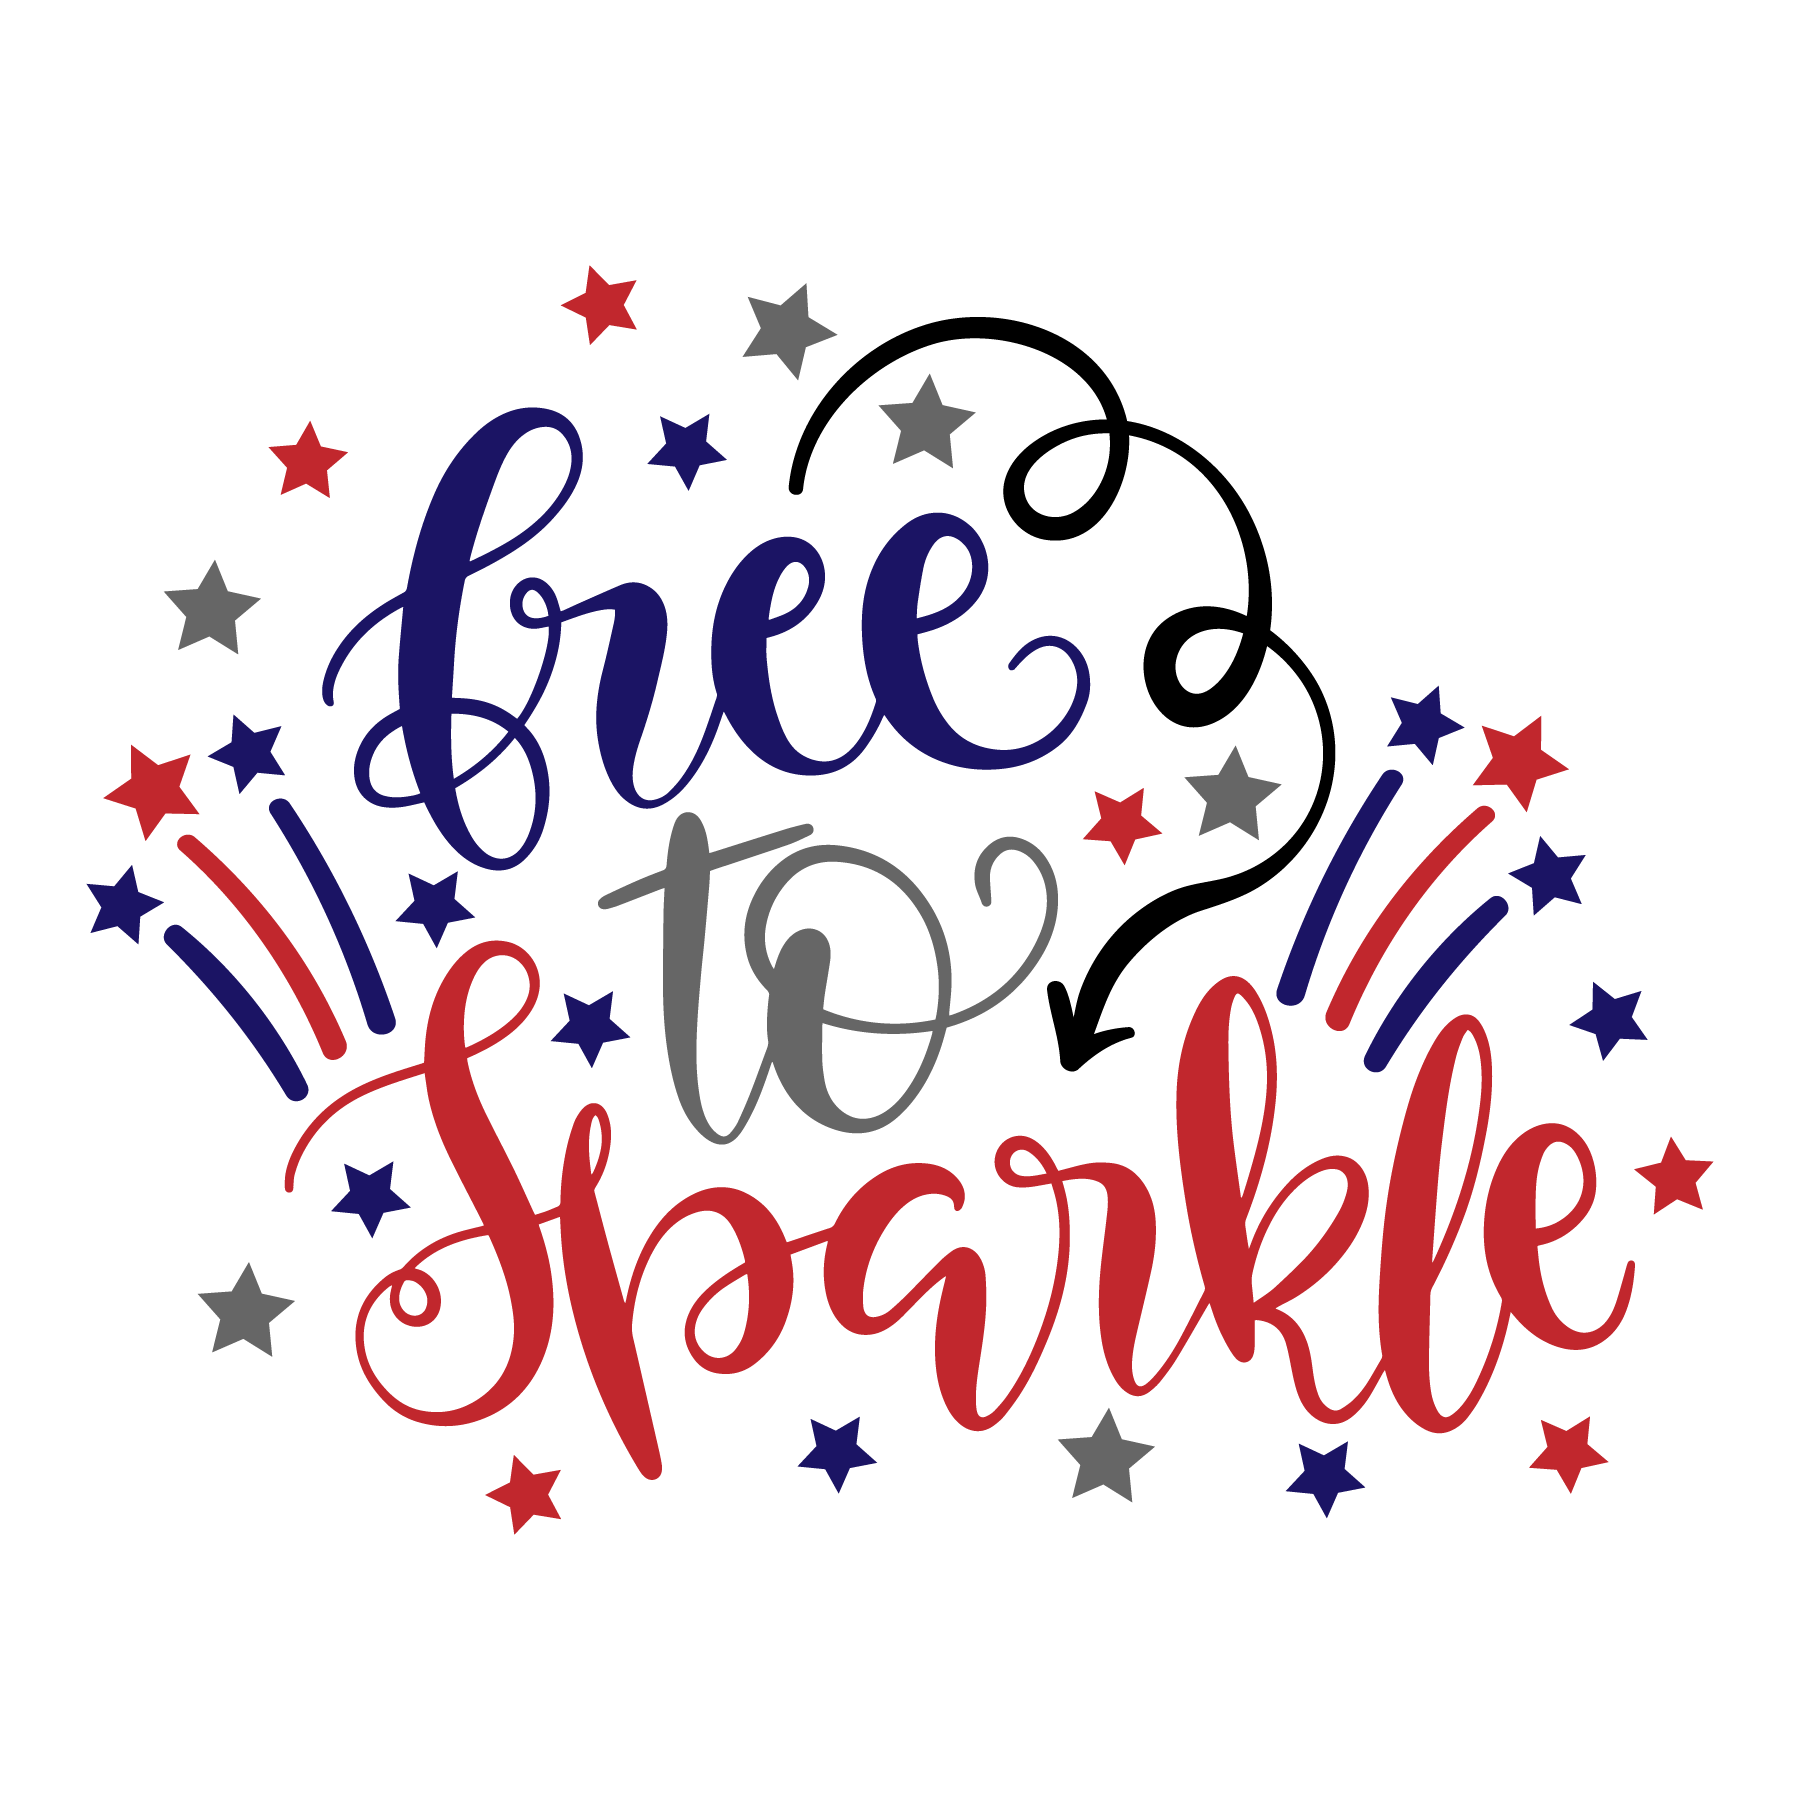 Download Free_to_Sparkle_COMMERCIAL_USE_OK | Free silhouette ...